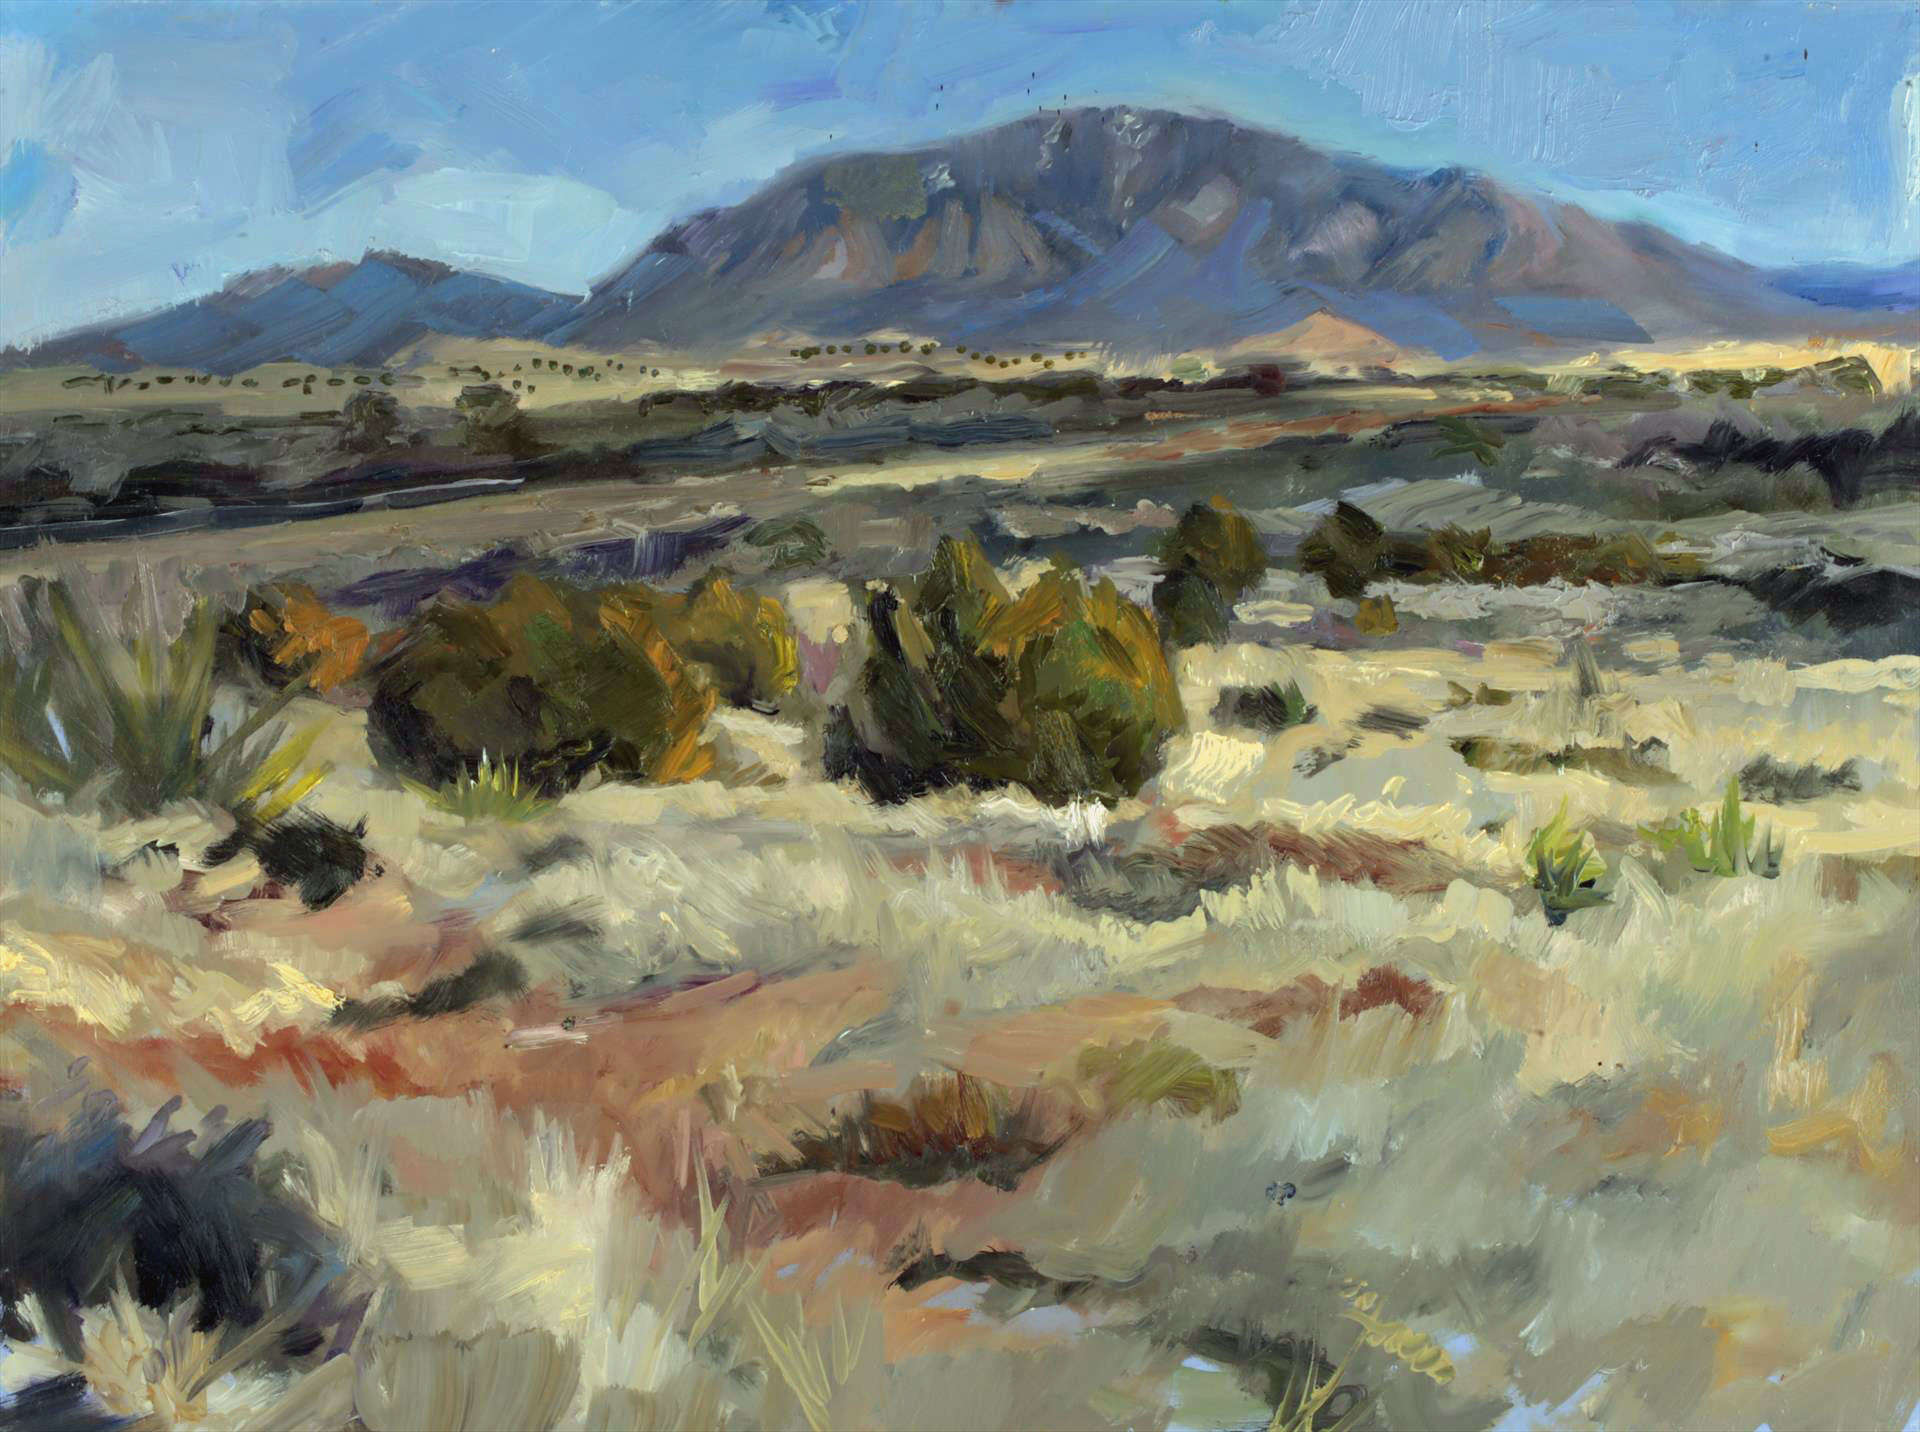 Karen LaValley |  VALLEY OF FIRES CARRIZOZO, NEW MEXICO 1 | oil | frame size 21x27